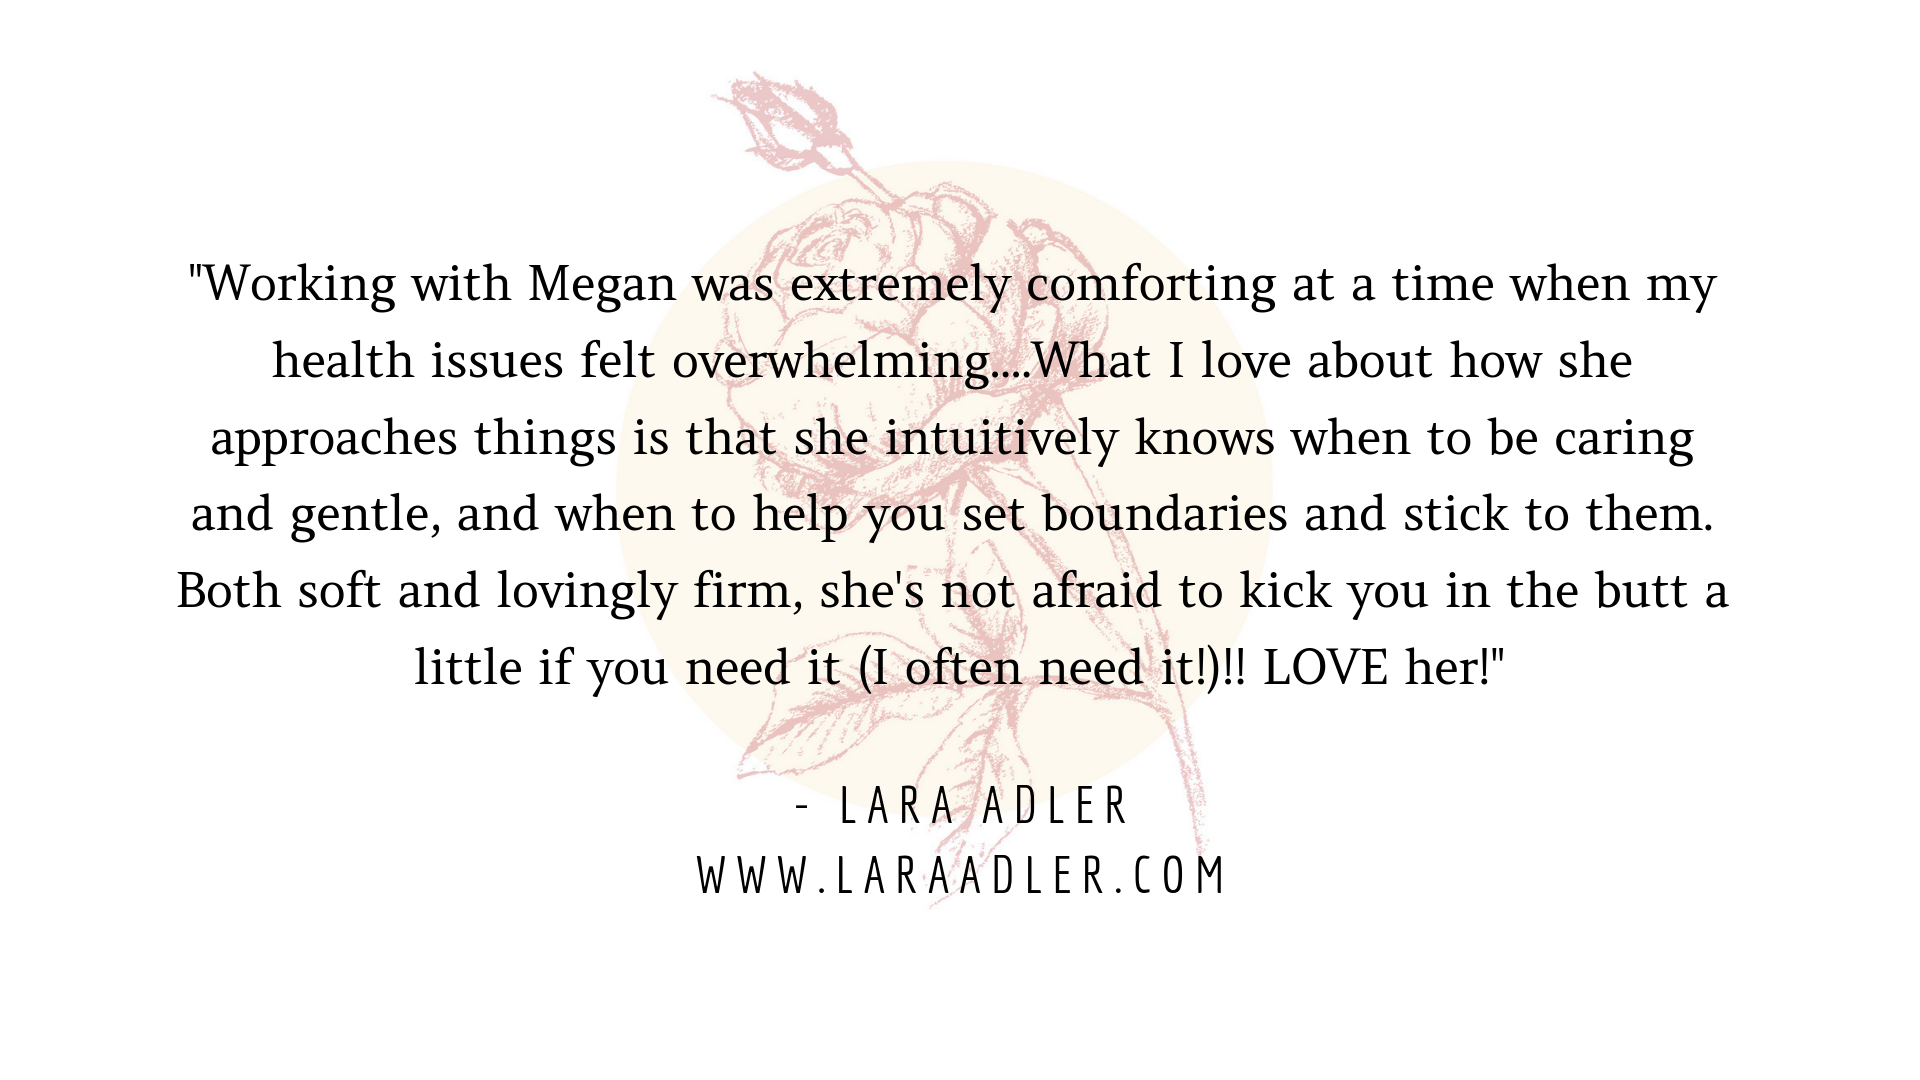 Working with Megan was extremely comforting at a time when my health issues felt overwhelming. She took time to really understand all the layers of what was going on with my health and my life in general, and offered.png